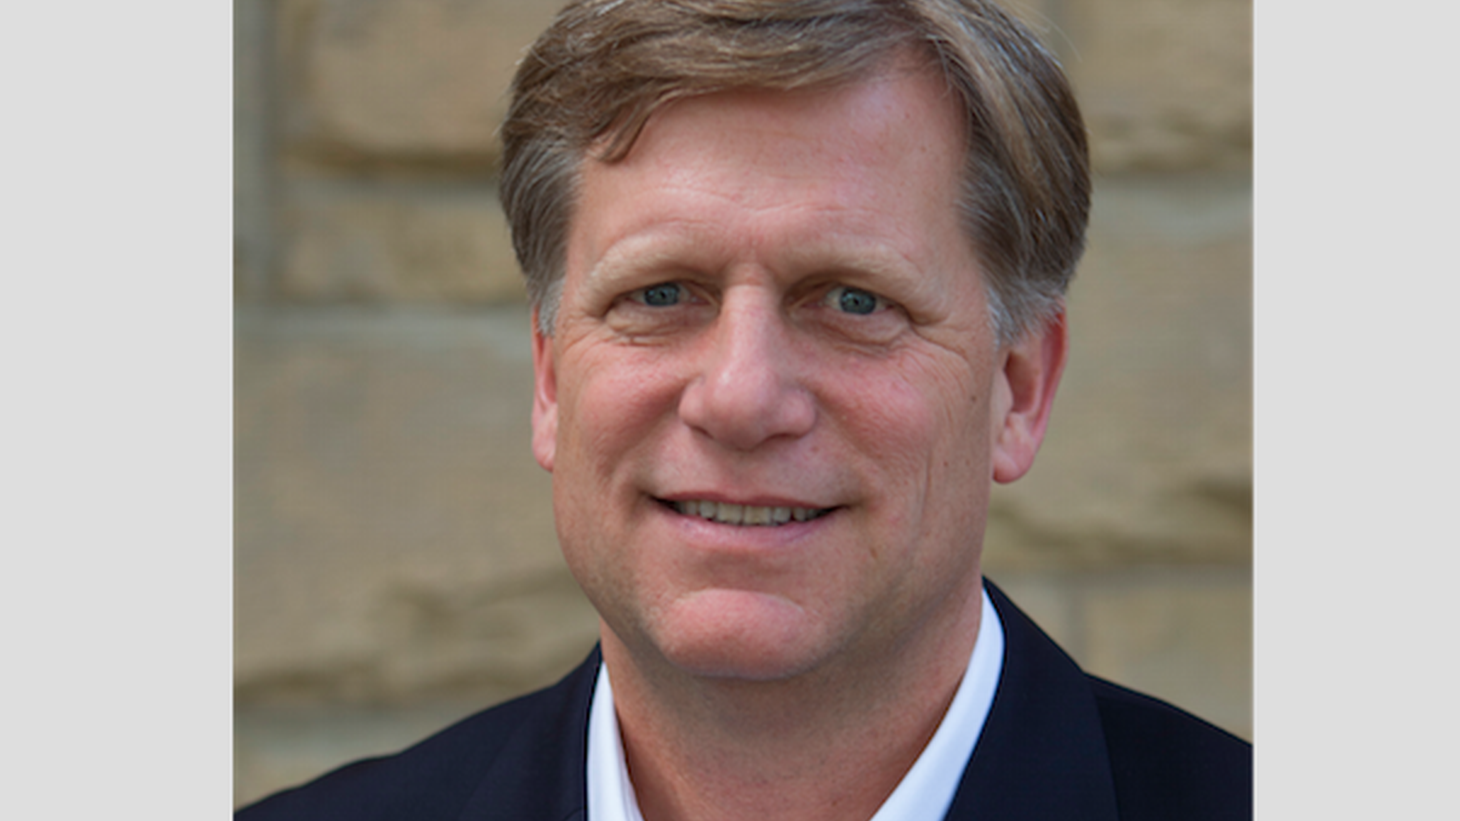 Michael McFaul was U.S. Ambassador to Russia from 2012 to 2014, during Obama's presidency.